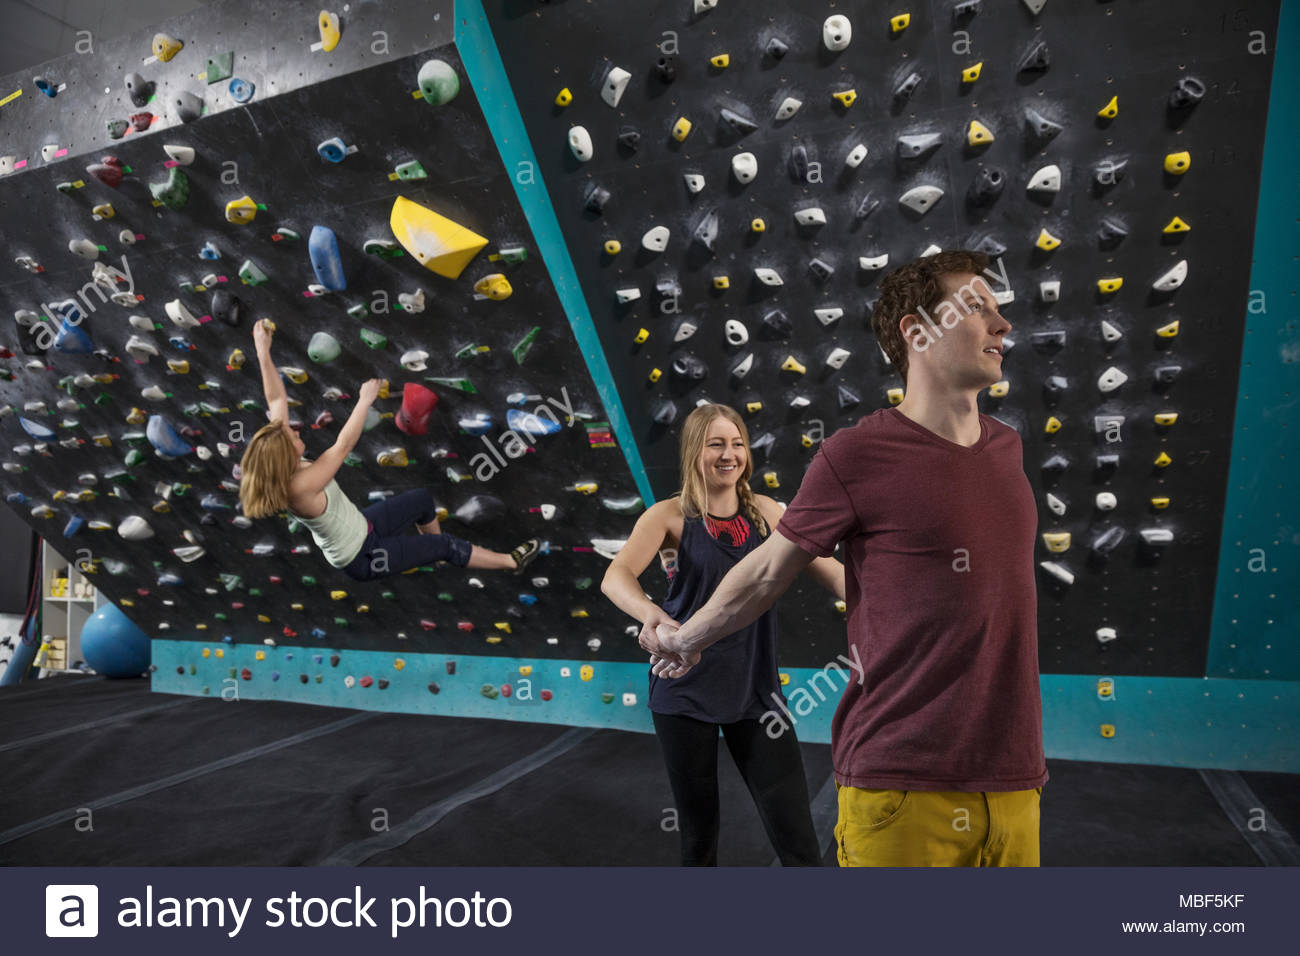 Rock climbers helping each other stretch, preparing at climbing gym - Stock Image